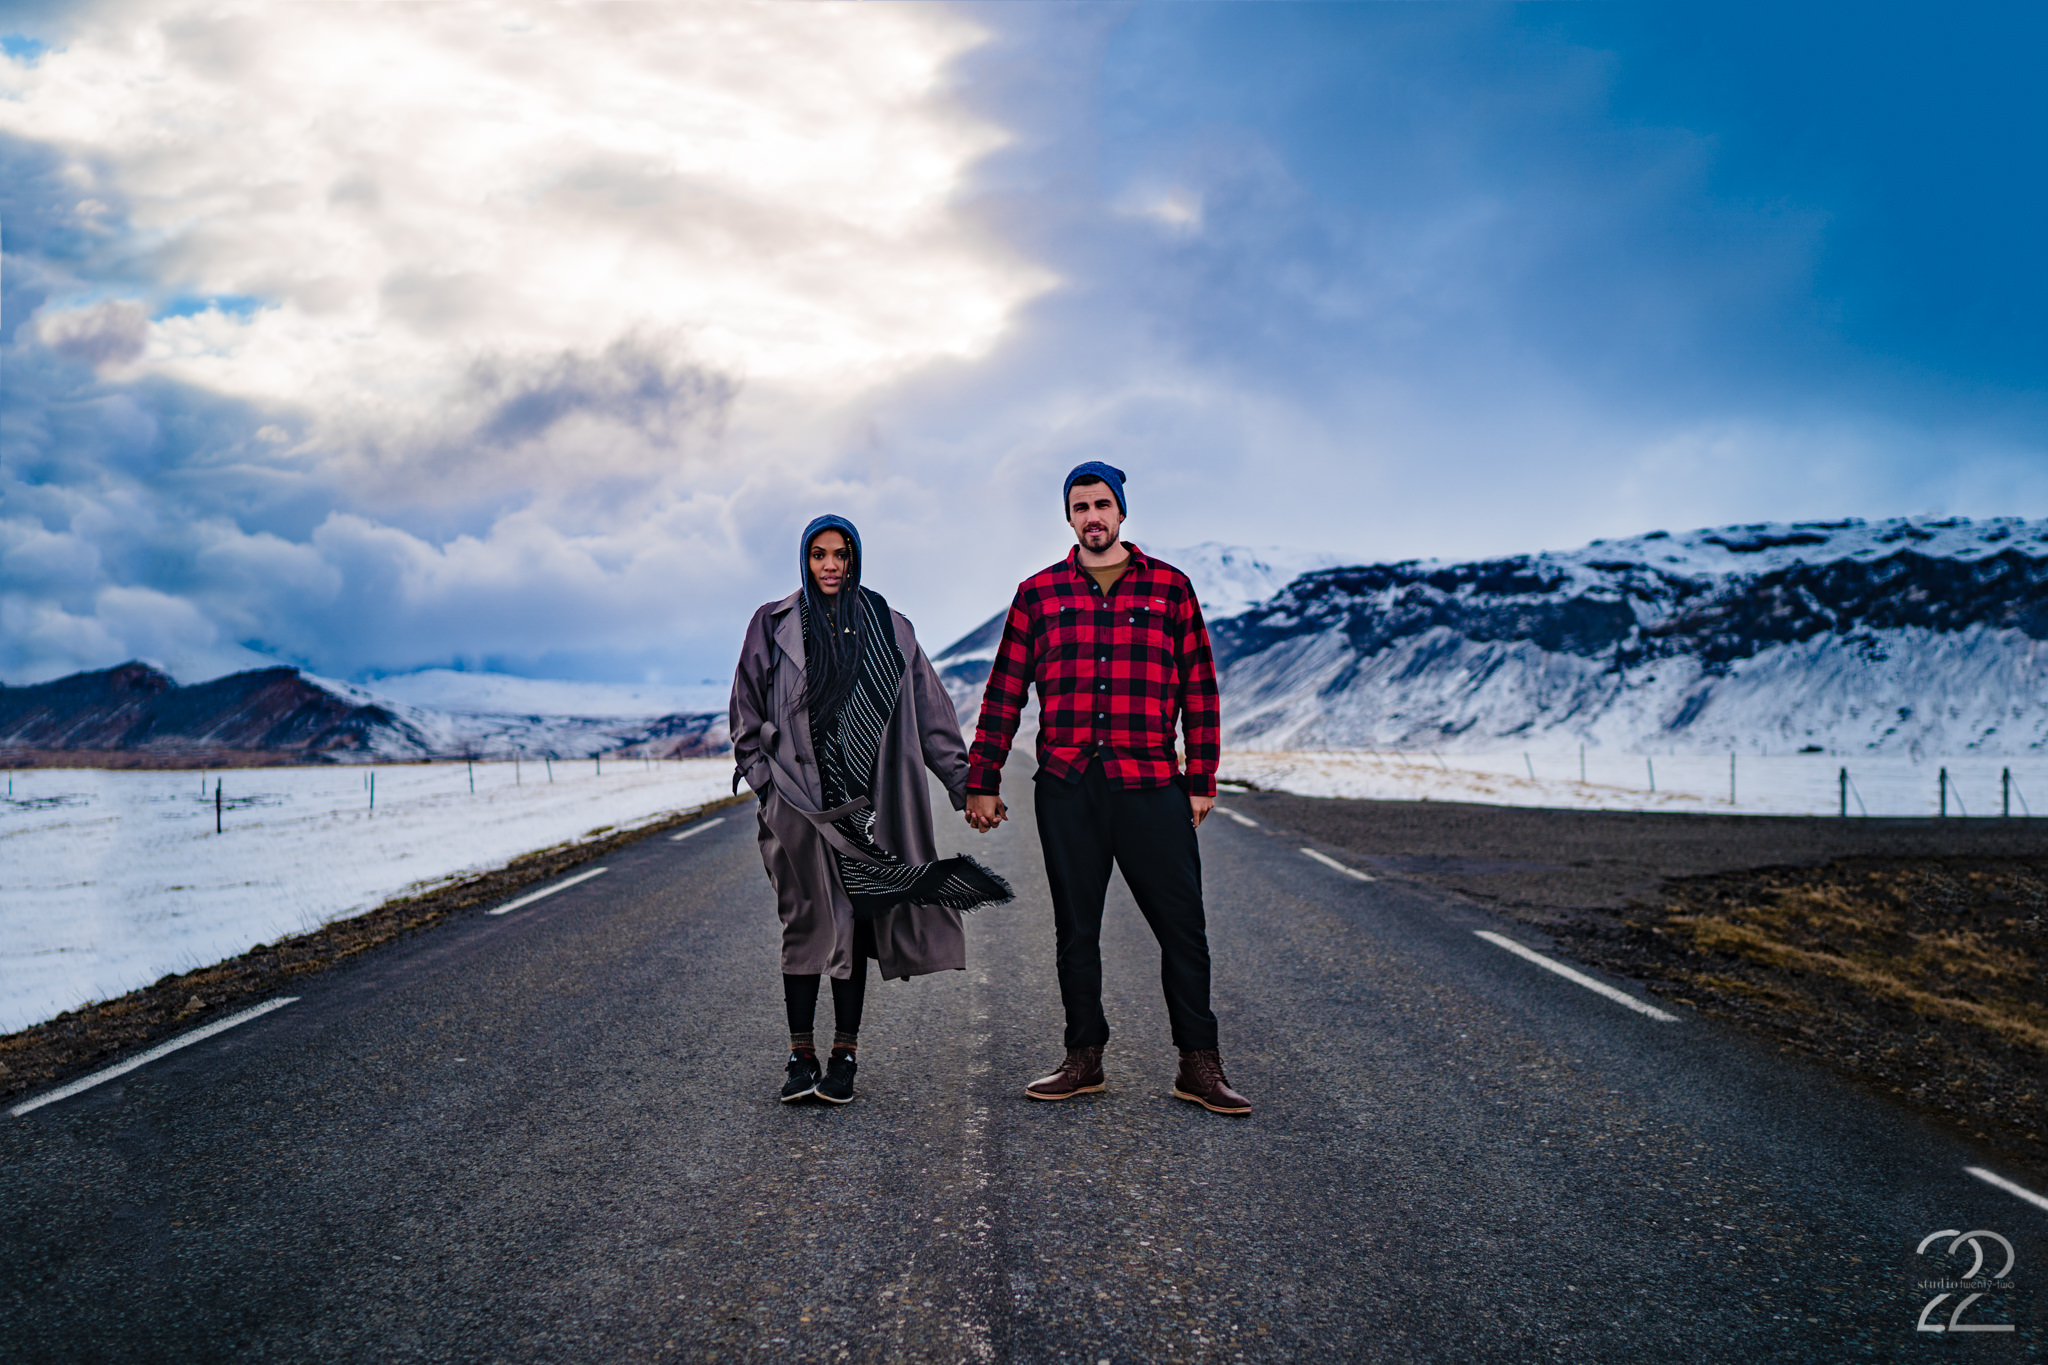 Winter couple's shoots don't have to mean freezing yourselves. Layers, accessories, and pops of colour can create cozy (and warm) portraits. Aubin did a fantastic job at pairing her jacket and scarf on this Iceland photoshoot with Studio 22 Photography.